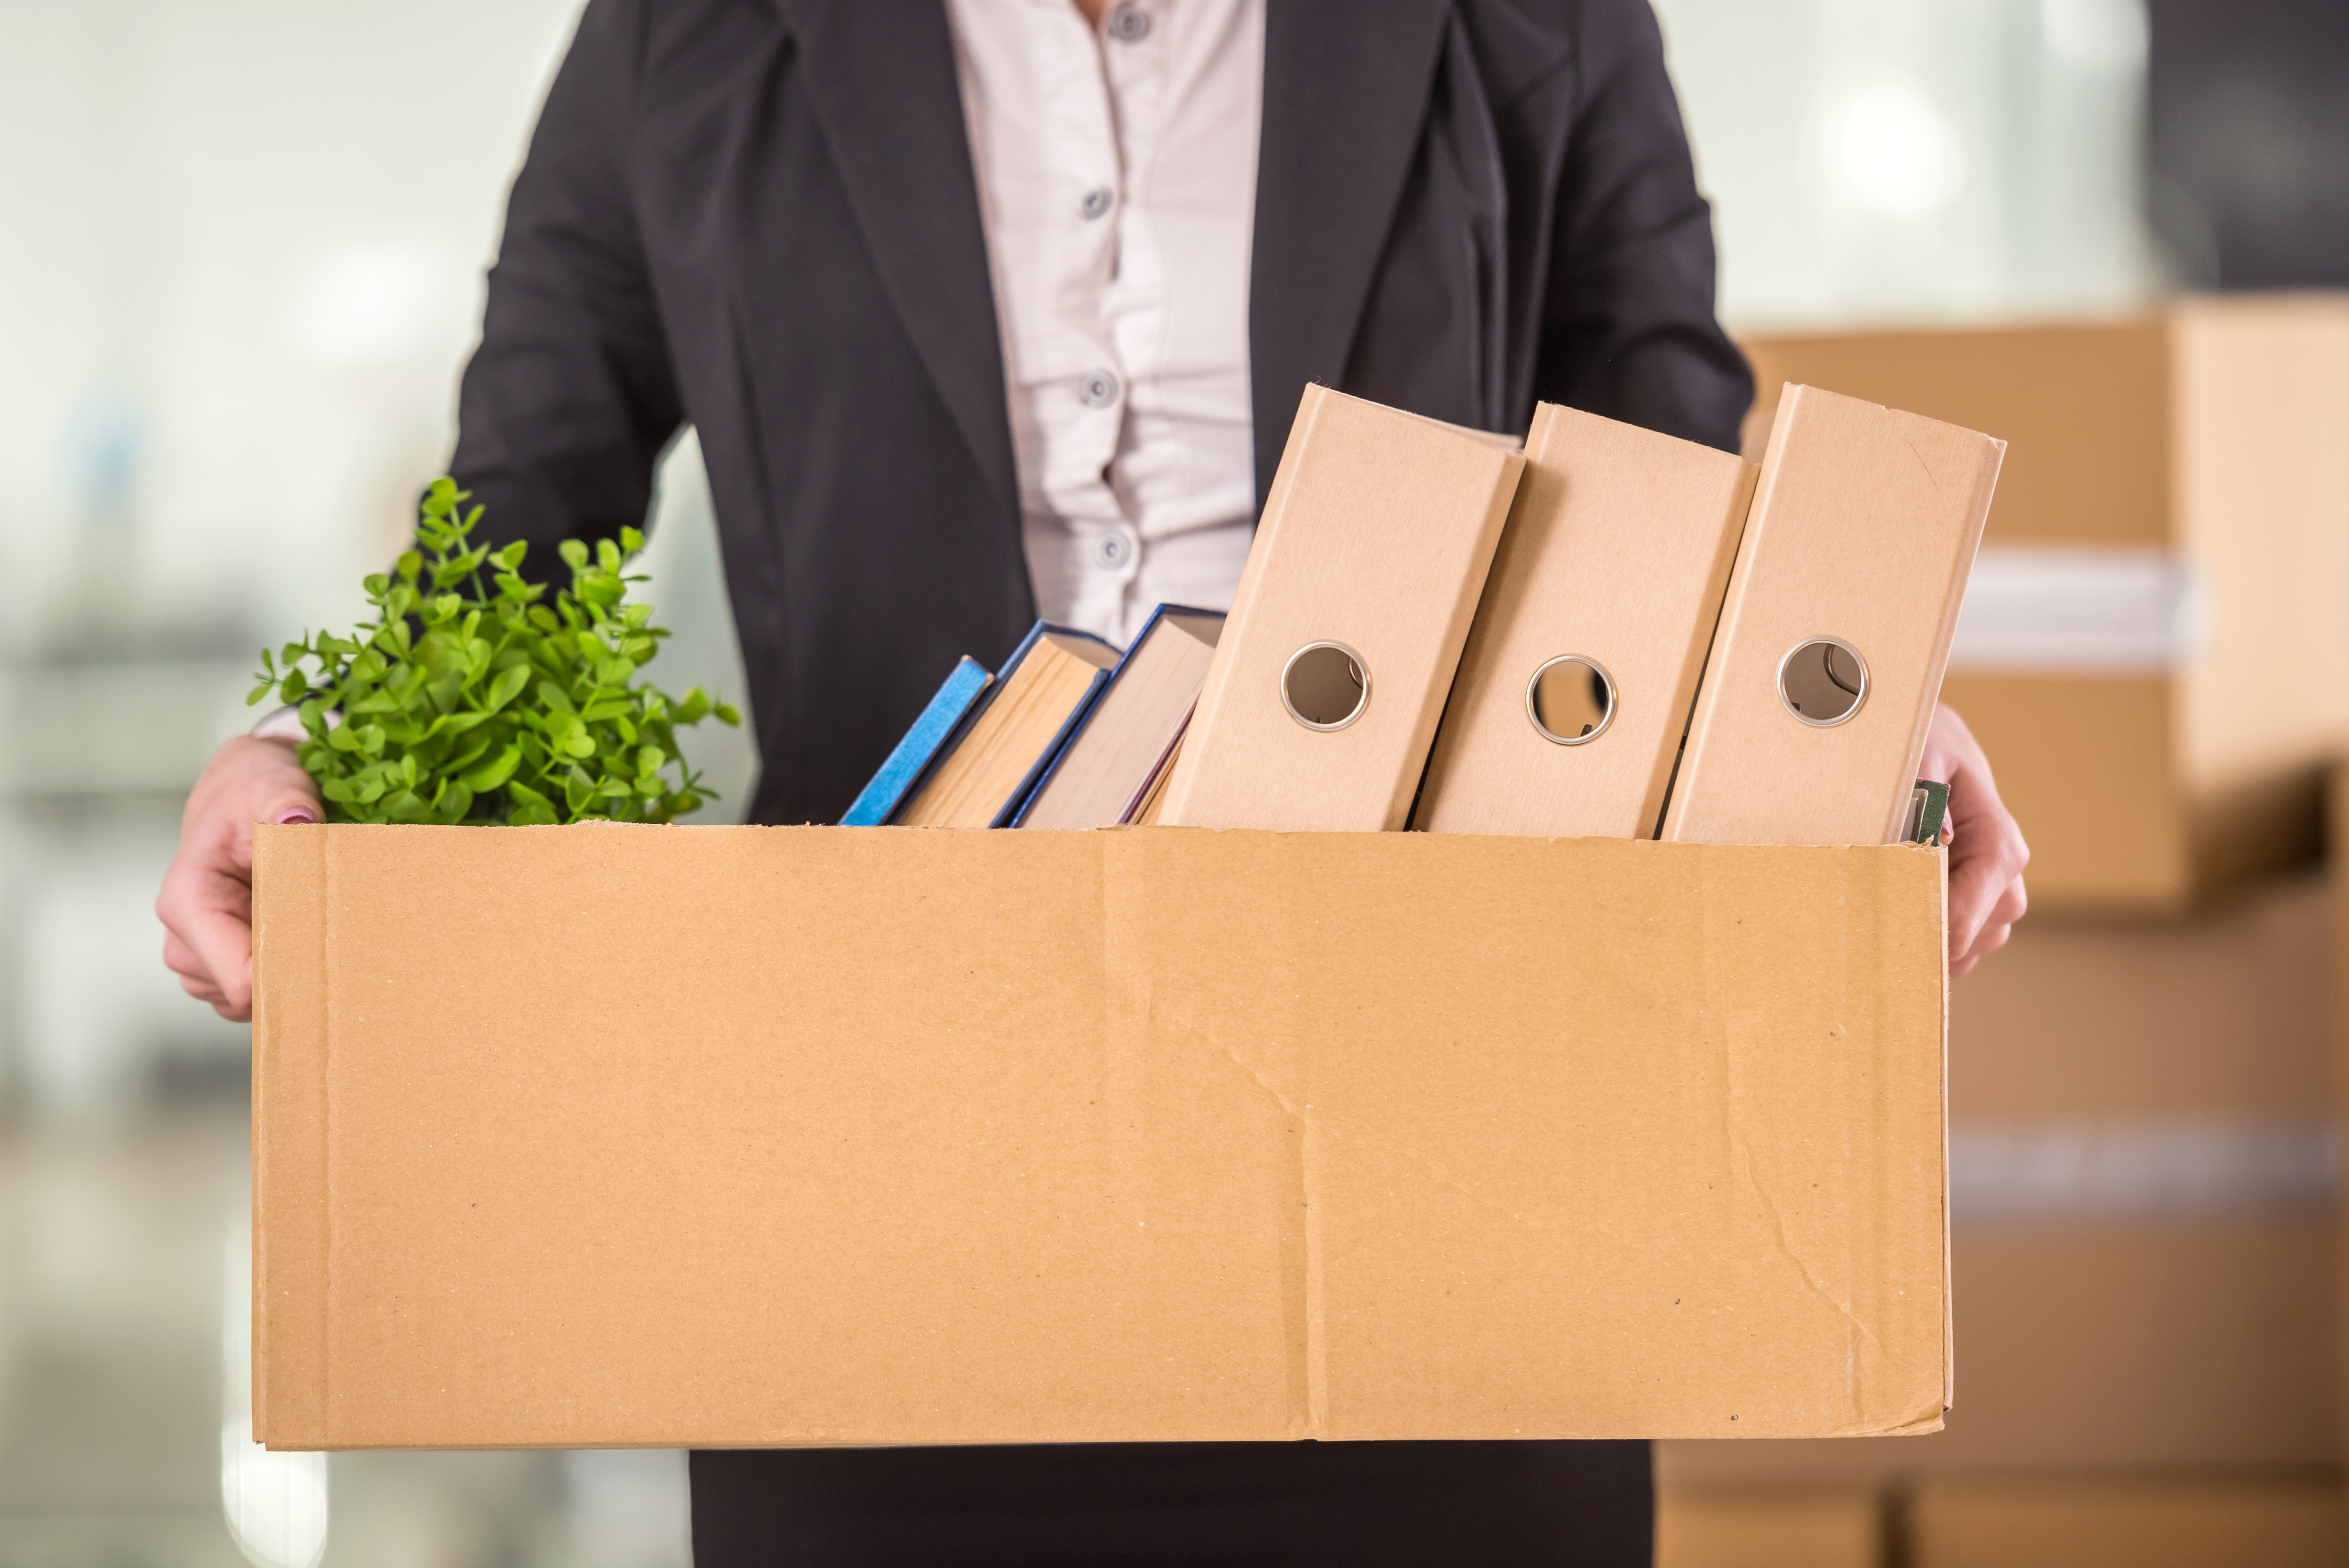 100115-corporate-relocation-box-full-of-business-files-shutterstock_2707557831